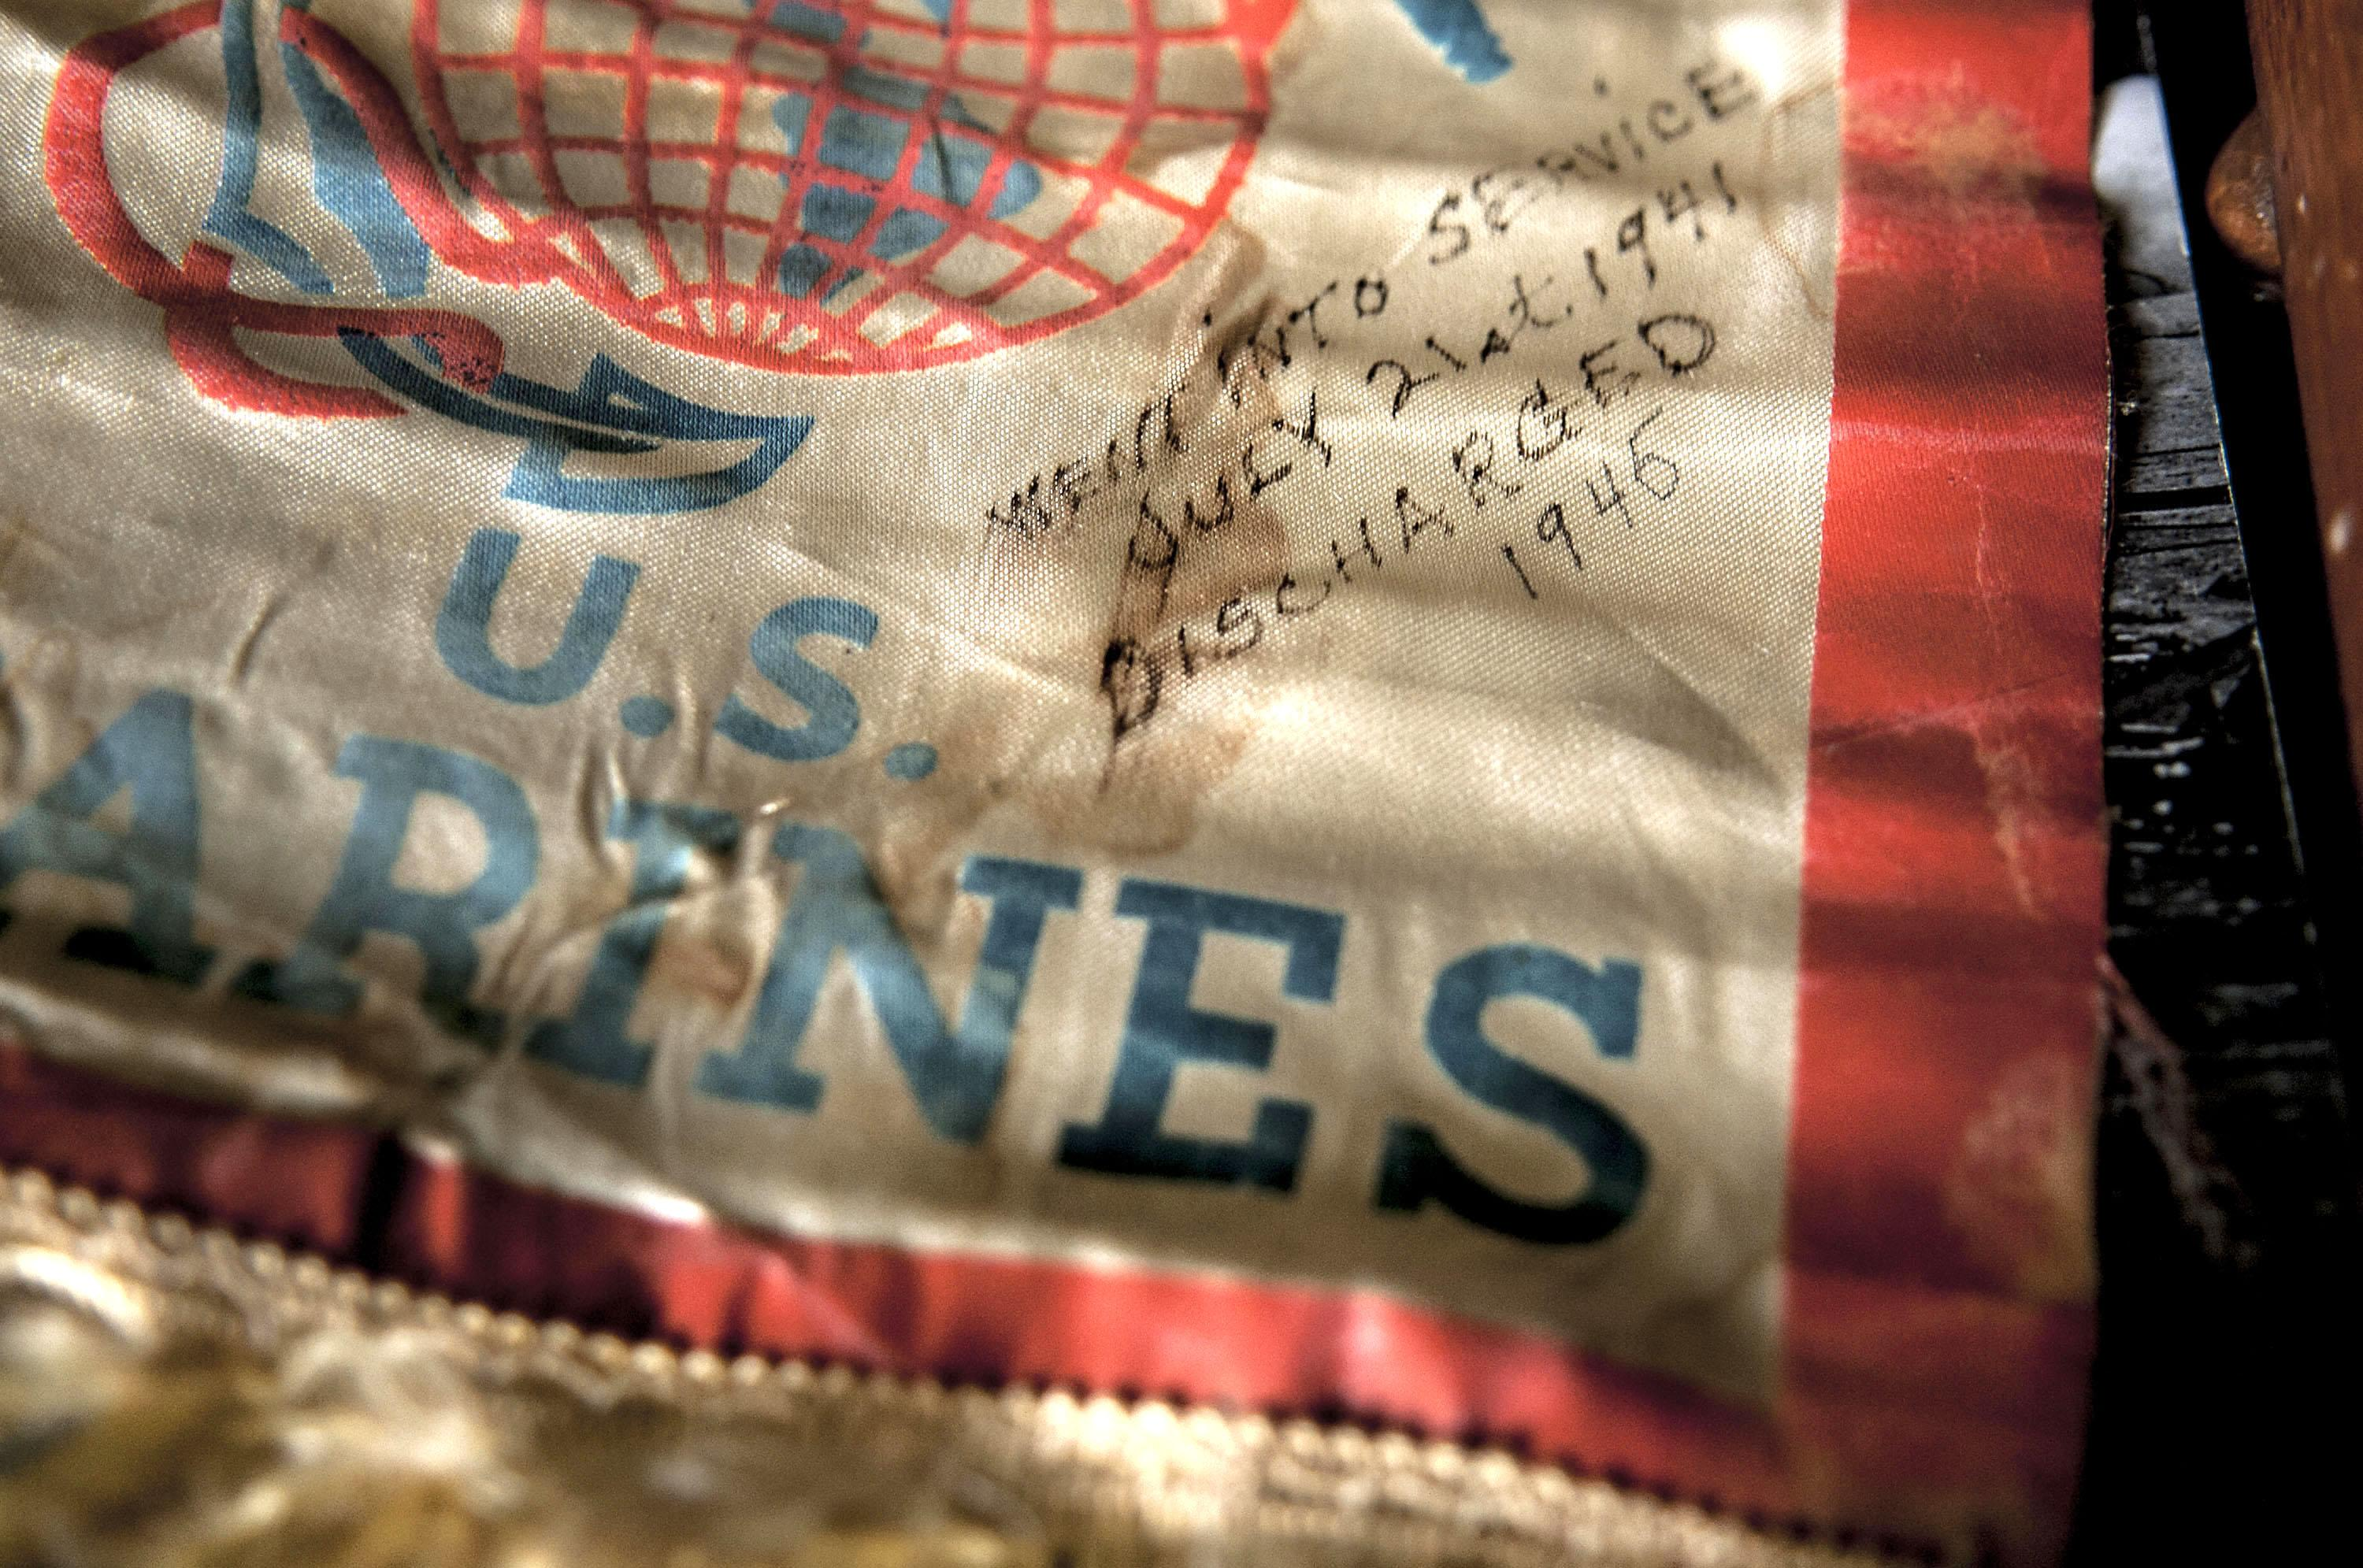 Pearl Harbor survivor Ray Garland's mother Genevieve kept this souvenir U.S. Marines flag hanging from the front window of her home in Butte, Montana until he was discharged in 1946. He talked about her from his home in Coeur d'Alene on July 8, 2016. (Kathy Plonka / The Spokesman-Review)